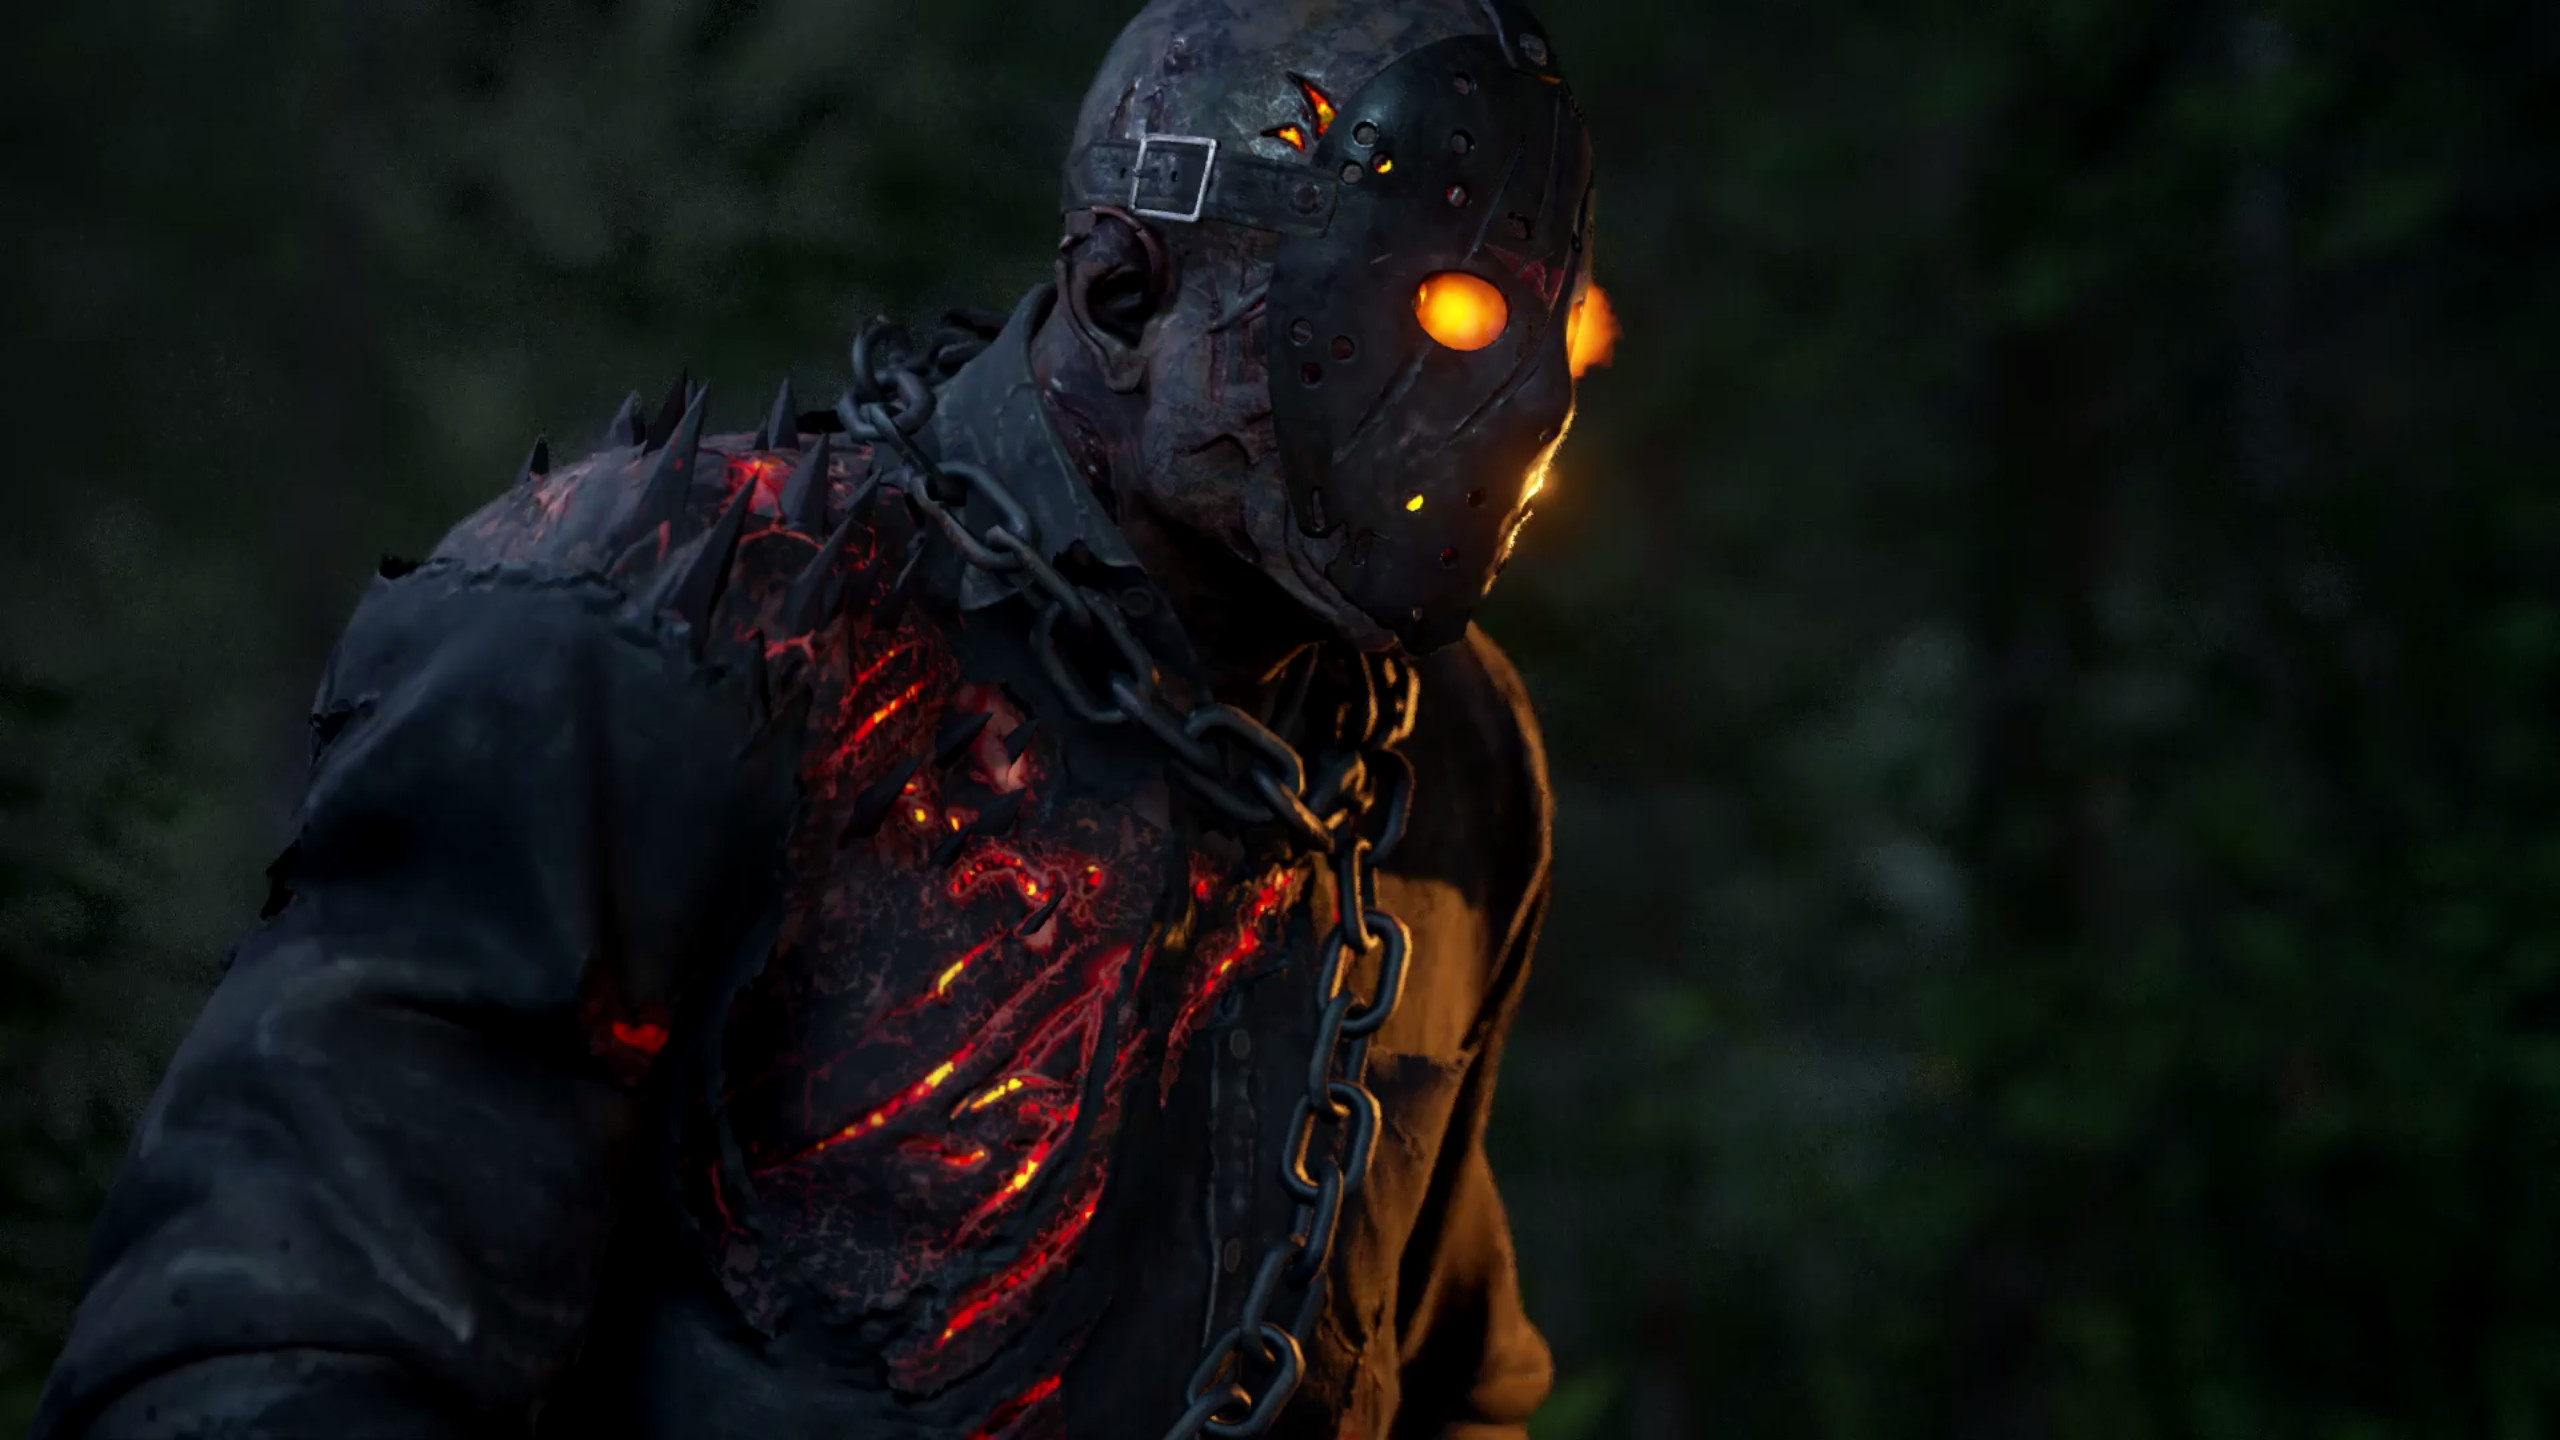 Jason voorhees friday the 13th wallpapers 71 pictures - Friday the thirteenth wallpaper ...